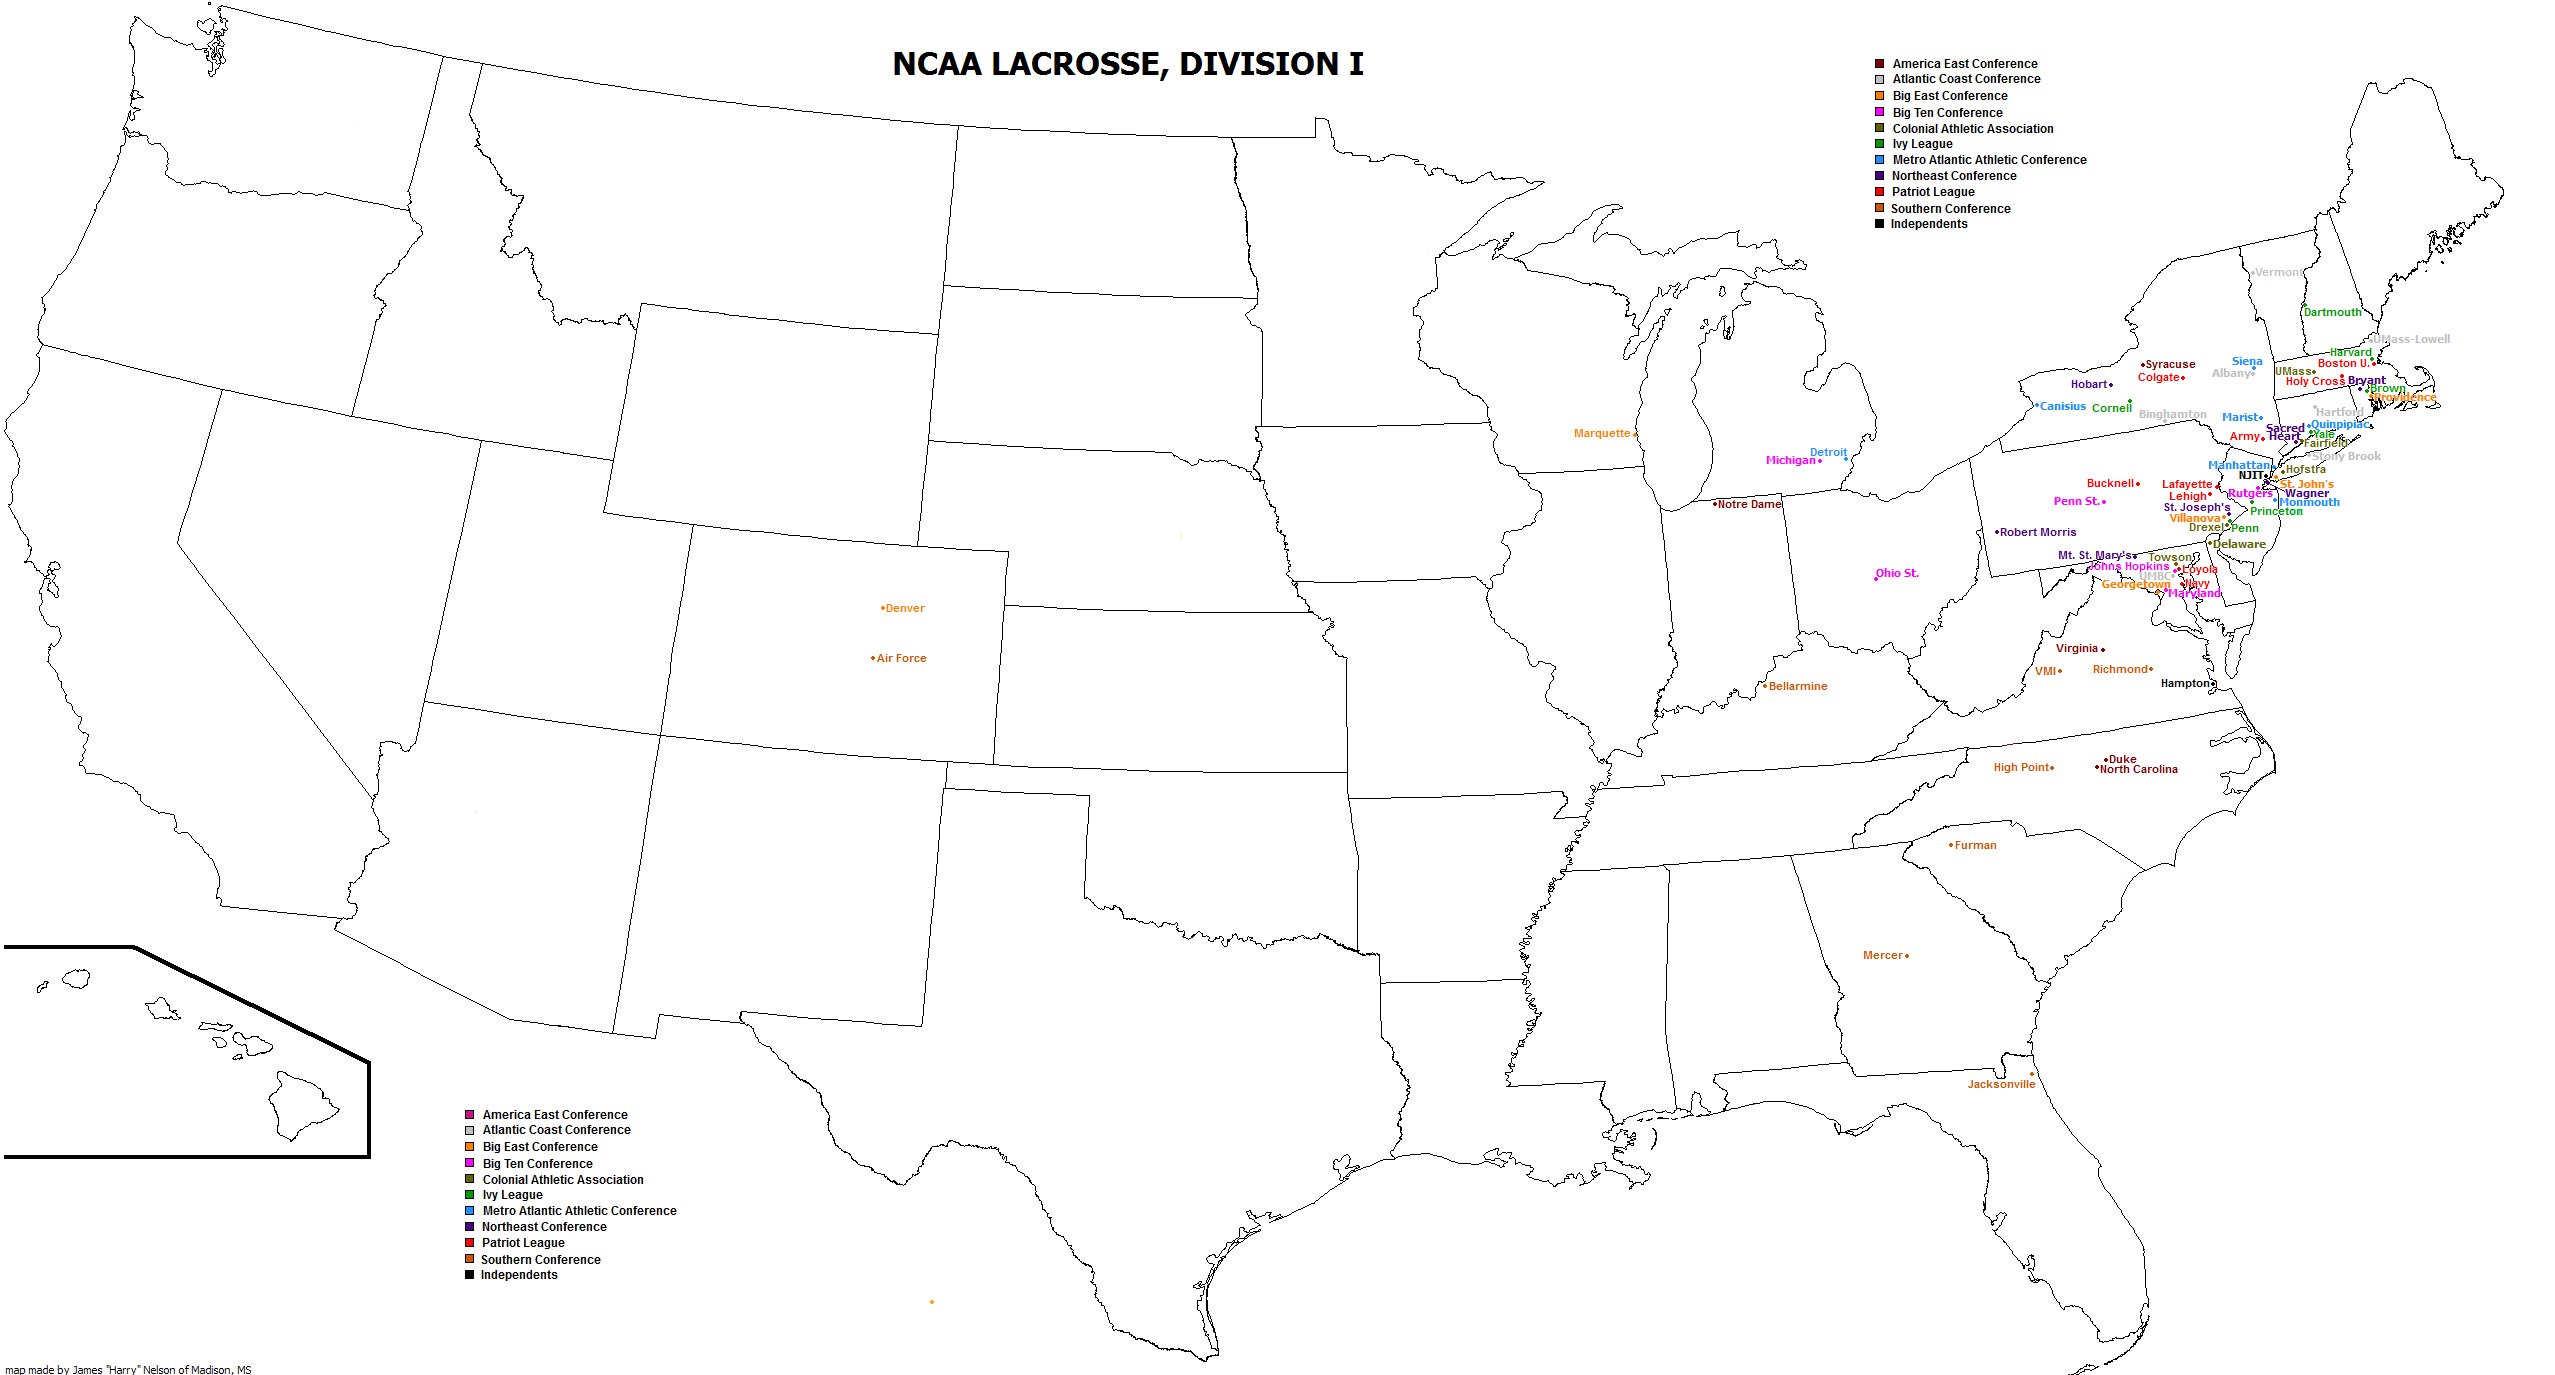 What Utah Reportedly Adding D Lacrosse Means Part HT - Map showing d3 schools in the us